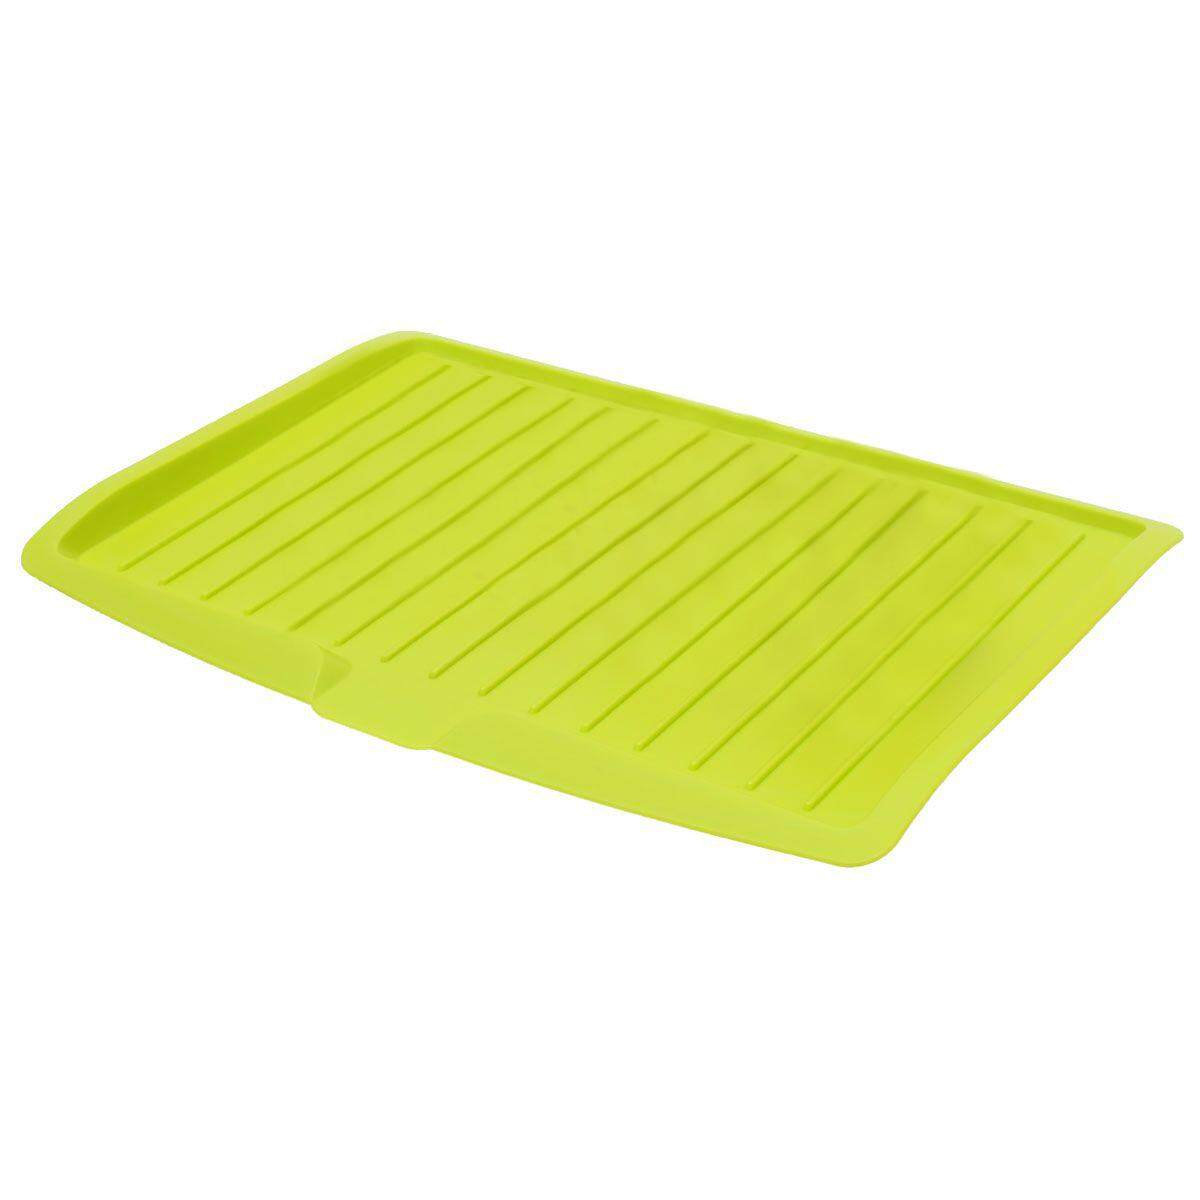 Plastic Dish Drainer Drip Tray Plate Cutlery Rack Kitchen Sink Rack Holder Large Green By Sunshineyou.